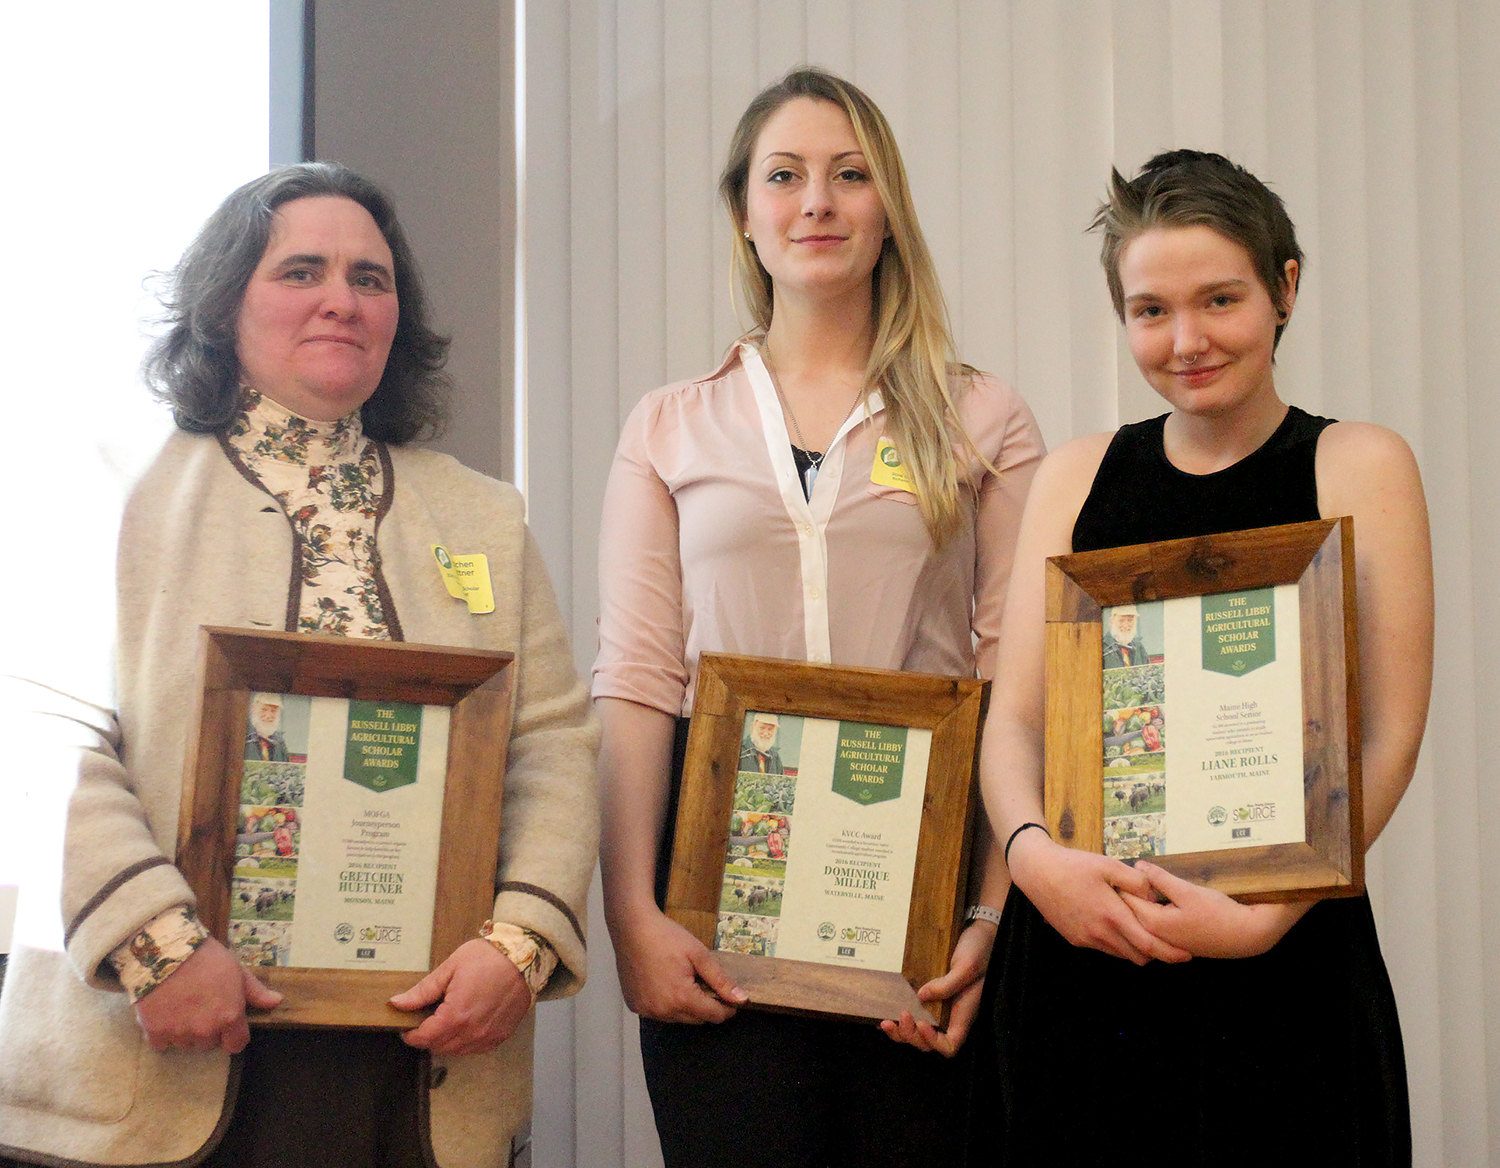 Receiving the Russell Libby Scholarships, from left, were Gretchen Huettner, Dominique Miller and Liane Rolls. The scholarships were presented Wednesday night as part of the Maine Sunday Telegram 2016 Source Awards.